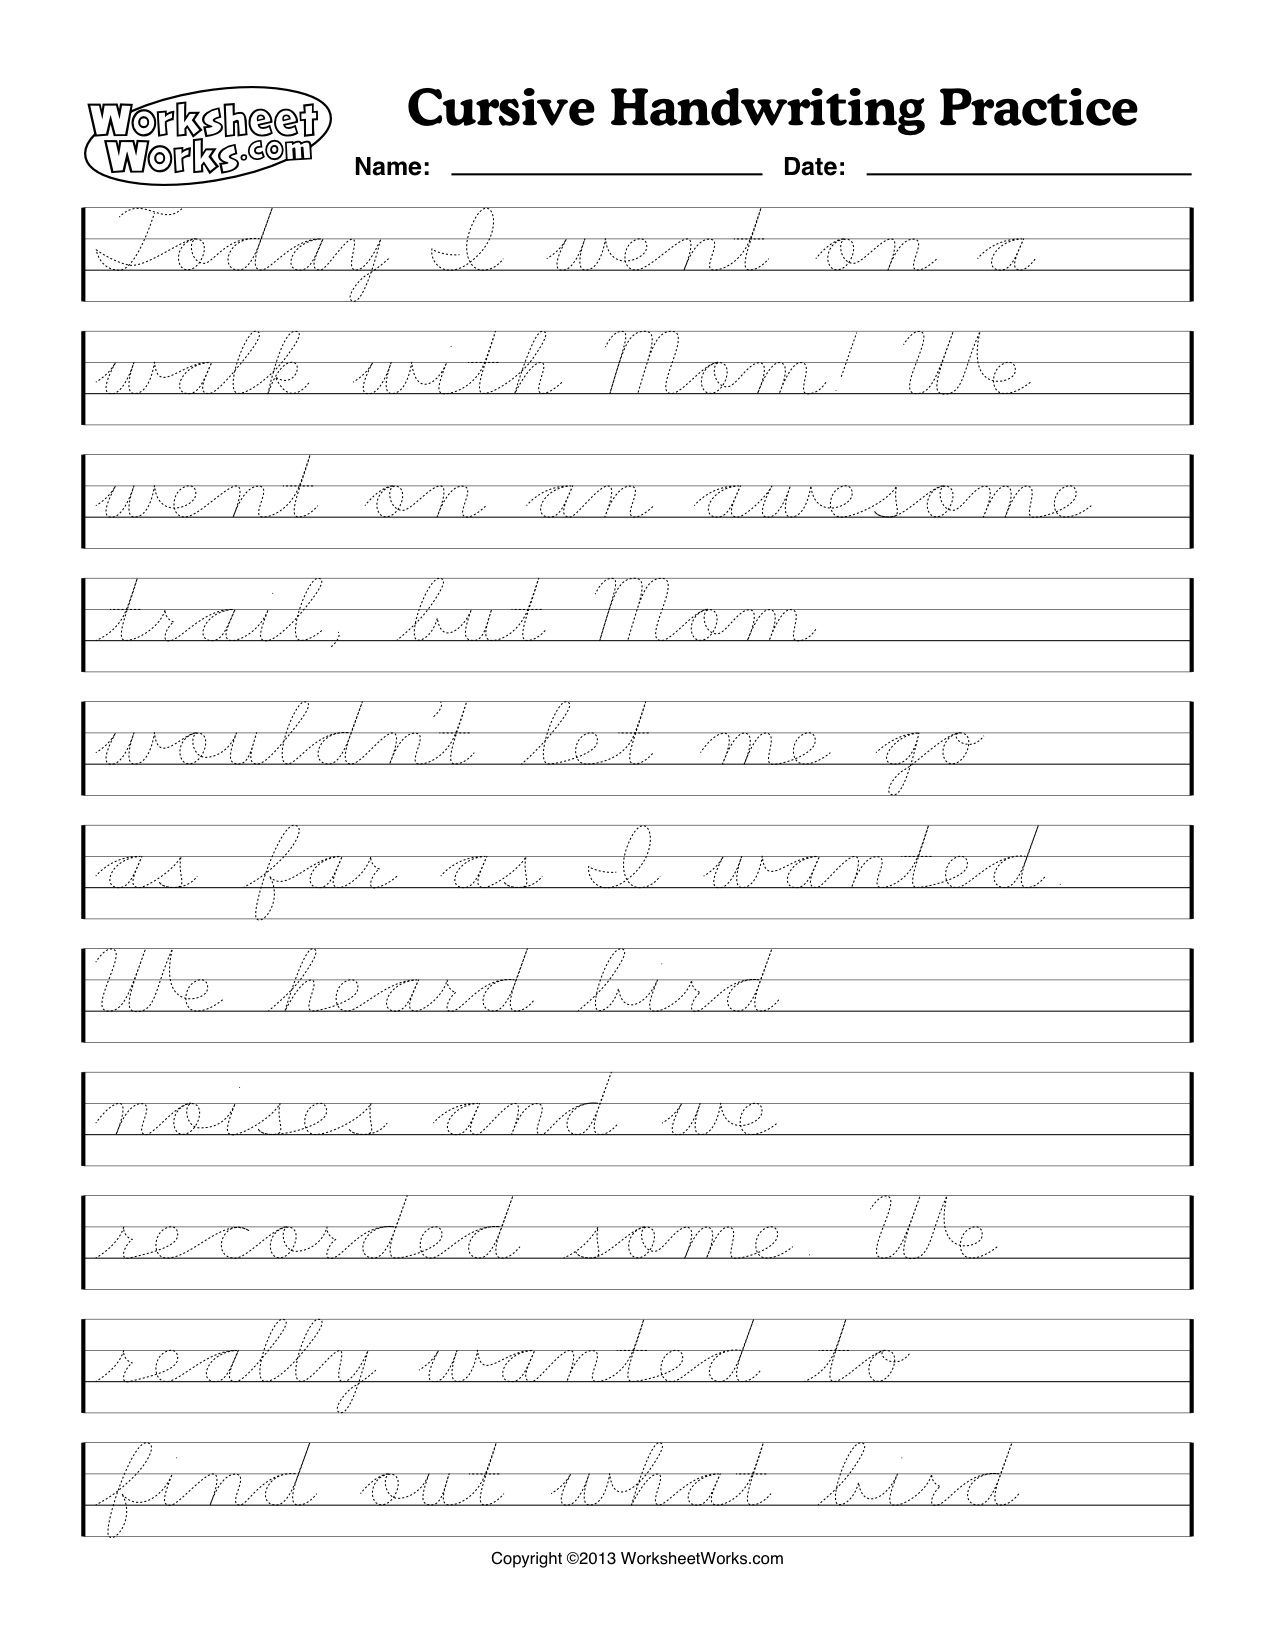 worksheet Cursive Practice Worksheets cursive handwriting worksheets writing worksheet one word english pic 18